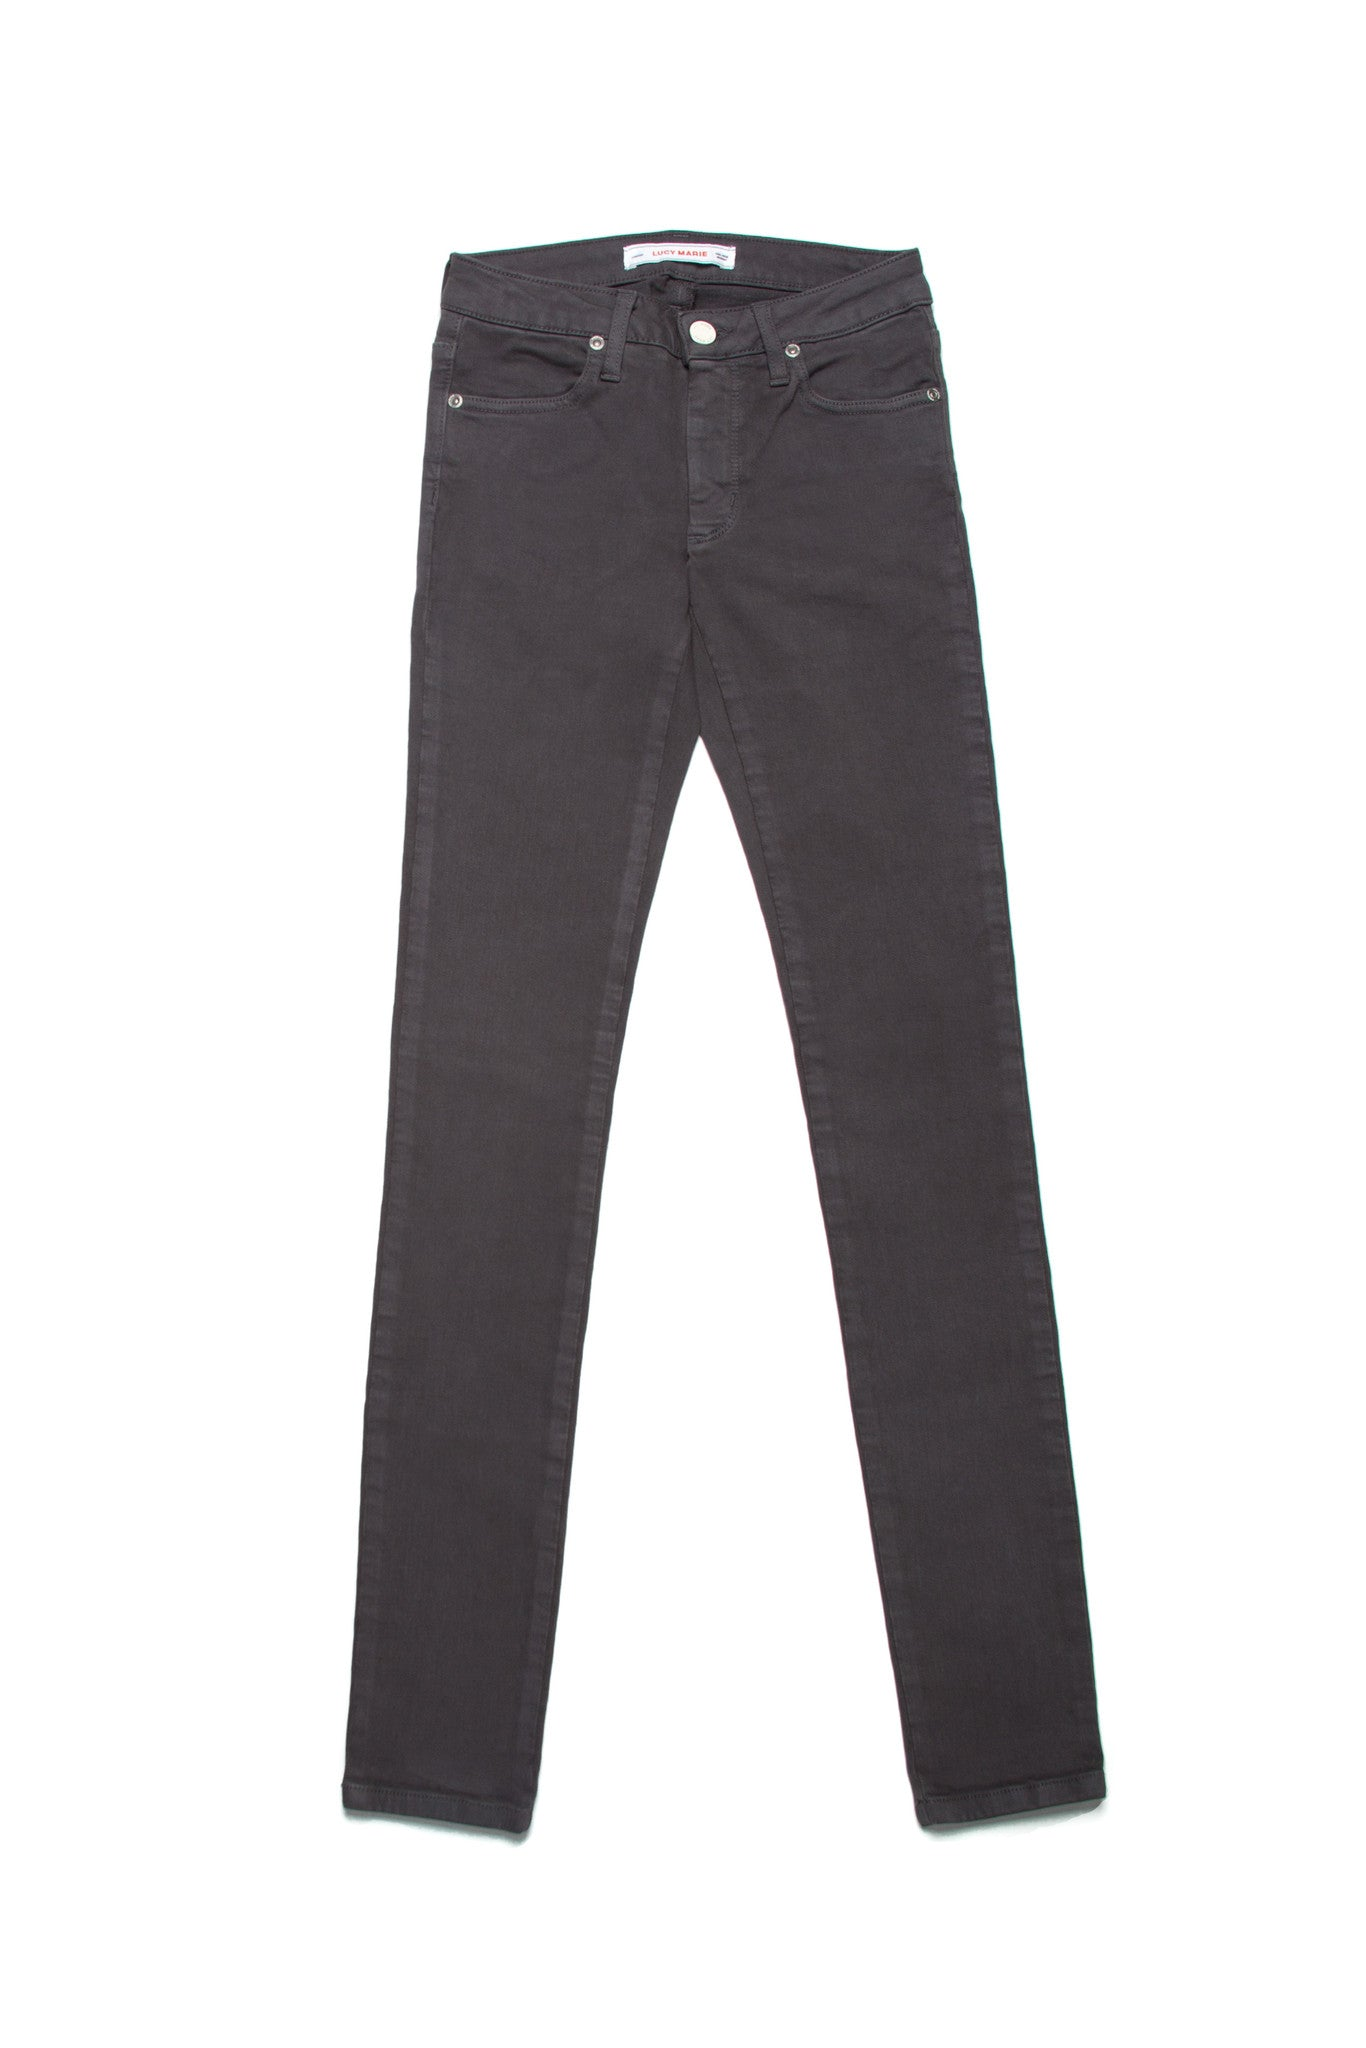 Lucy Marie Charcoal Skinny Jean